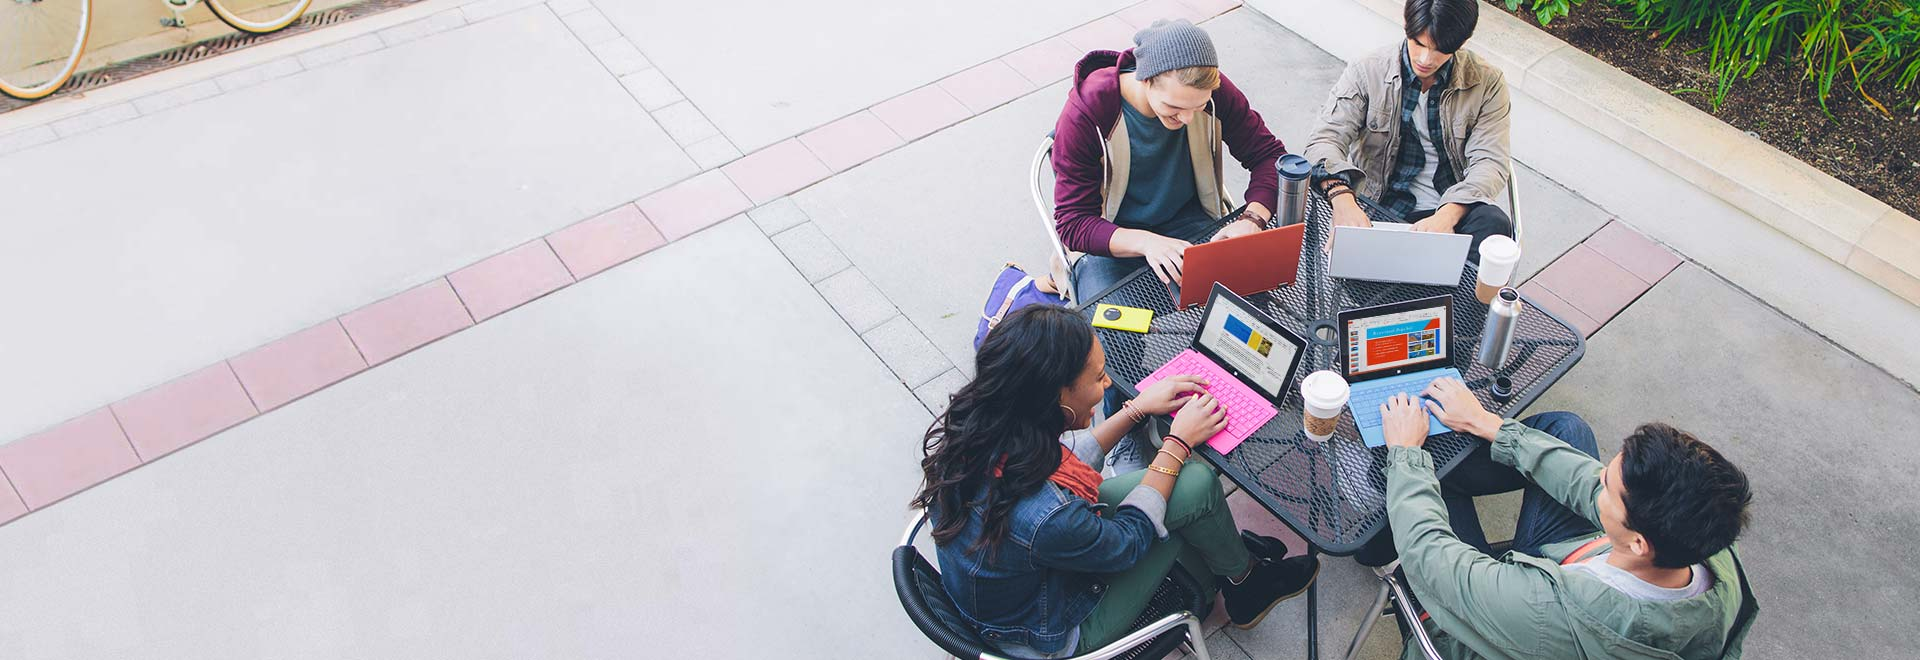 Four students sitting at a table outside, using Office 365 Education on tablets.